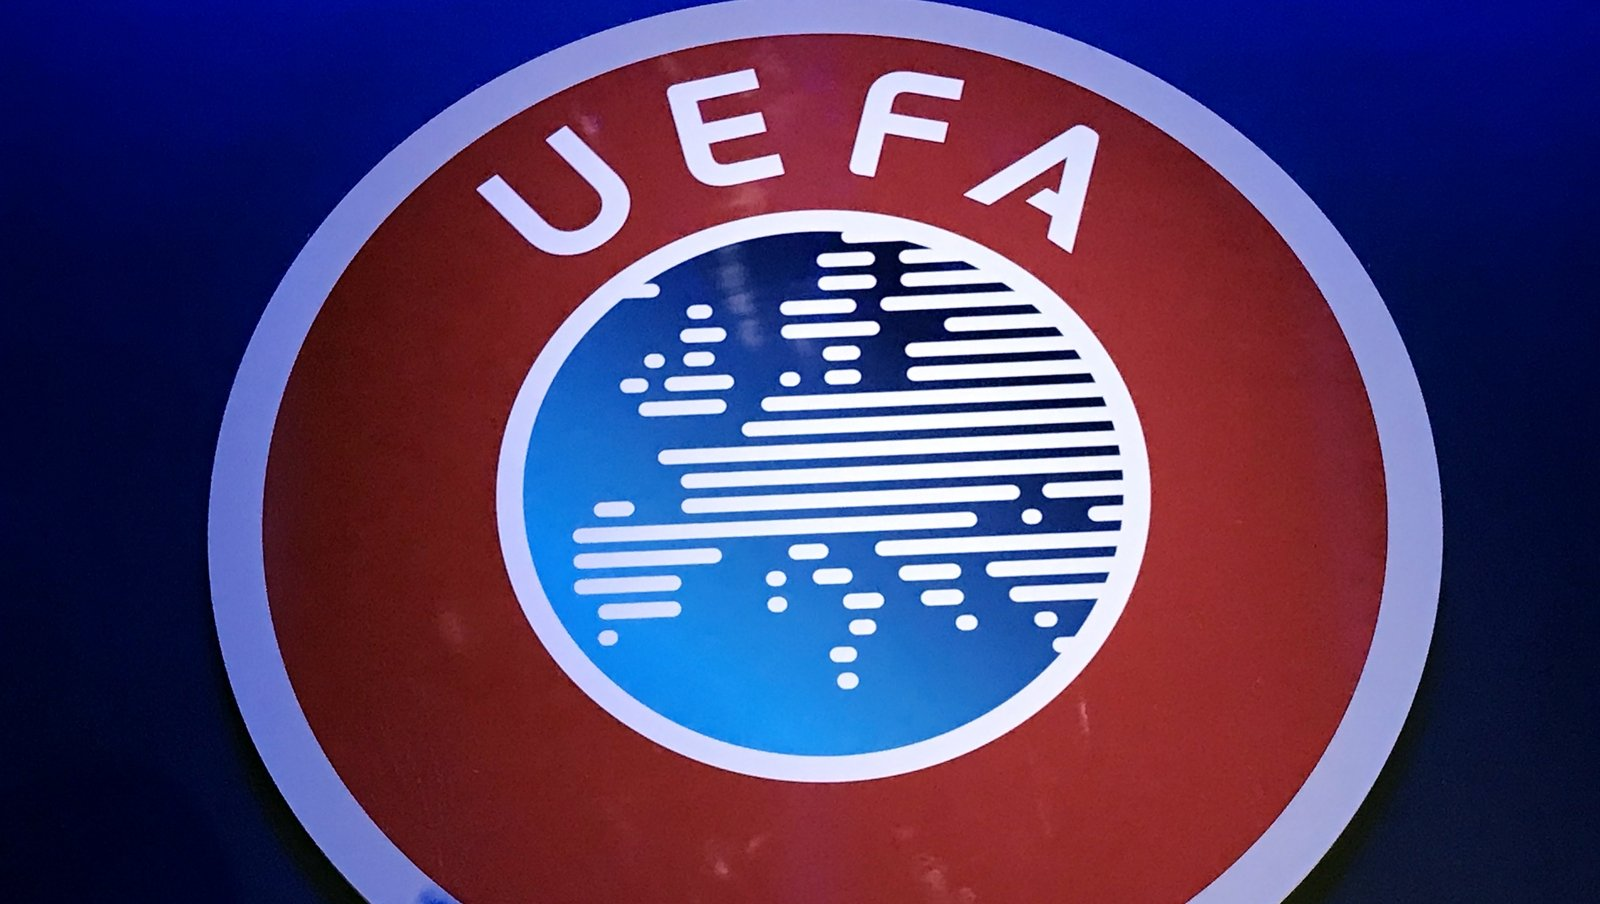 UEFA secures court narrate to block illegal streaming